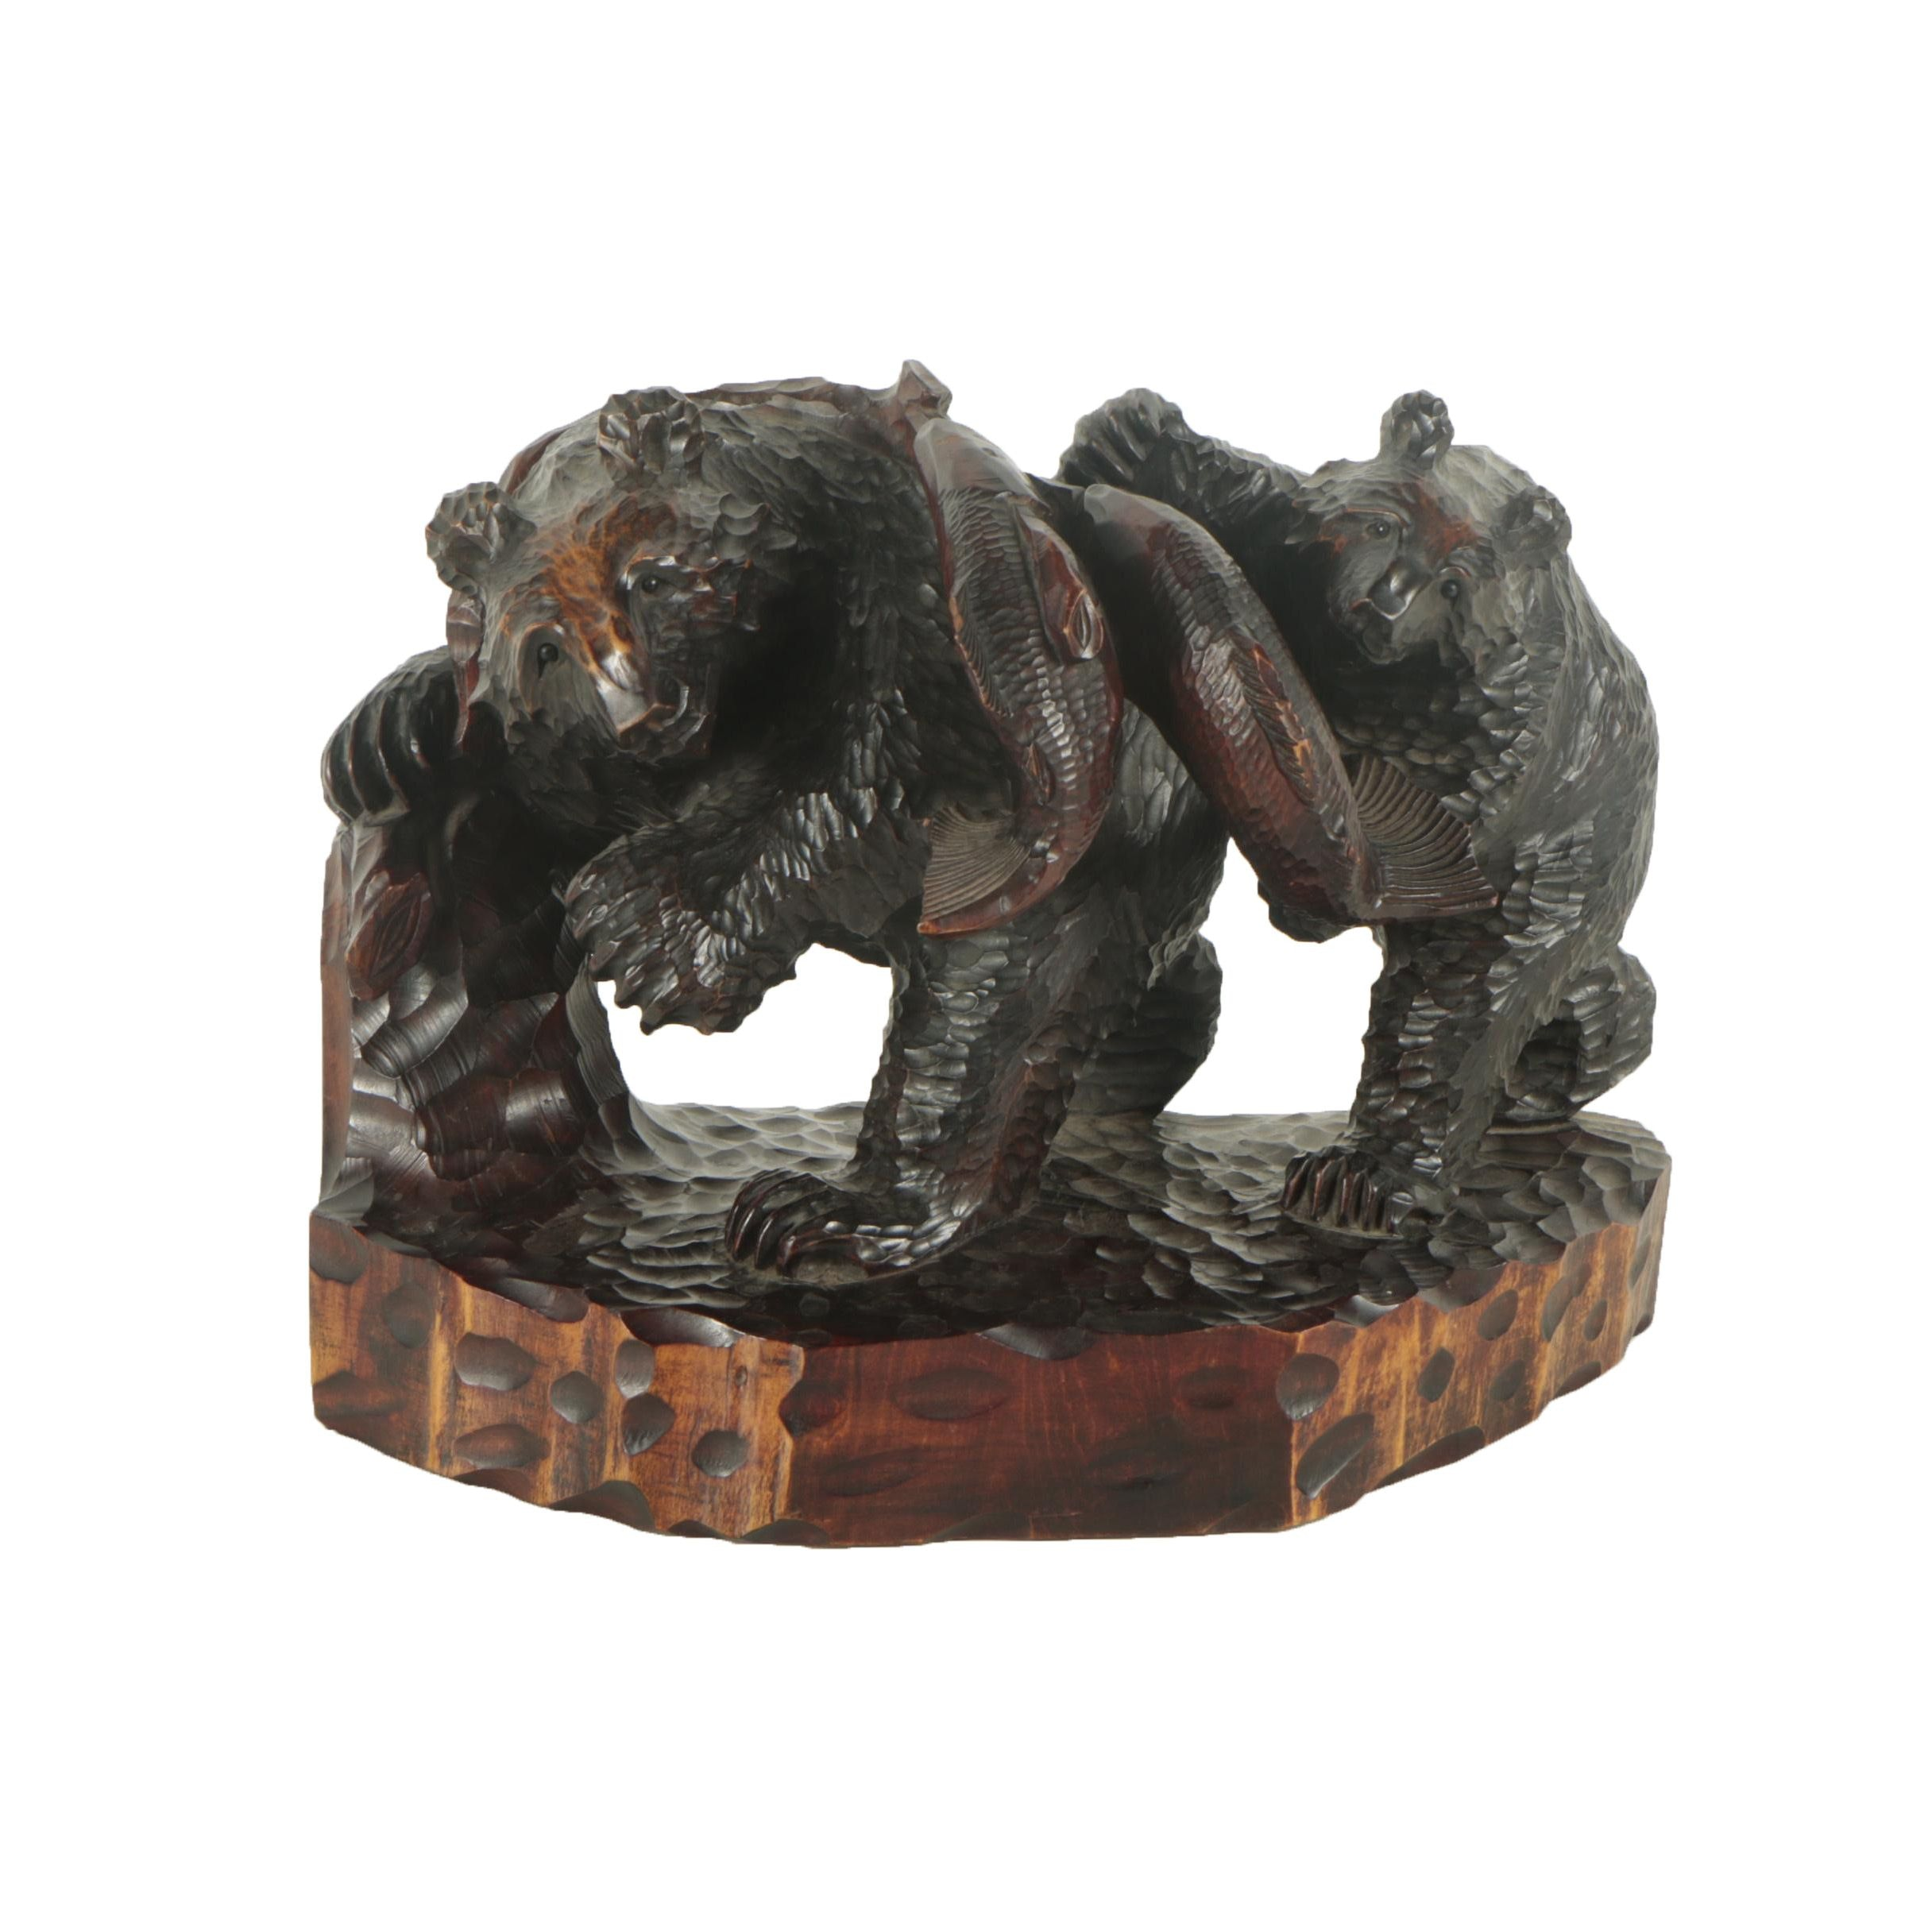 Japanese Wood Sculpture of Bears with Fish